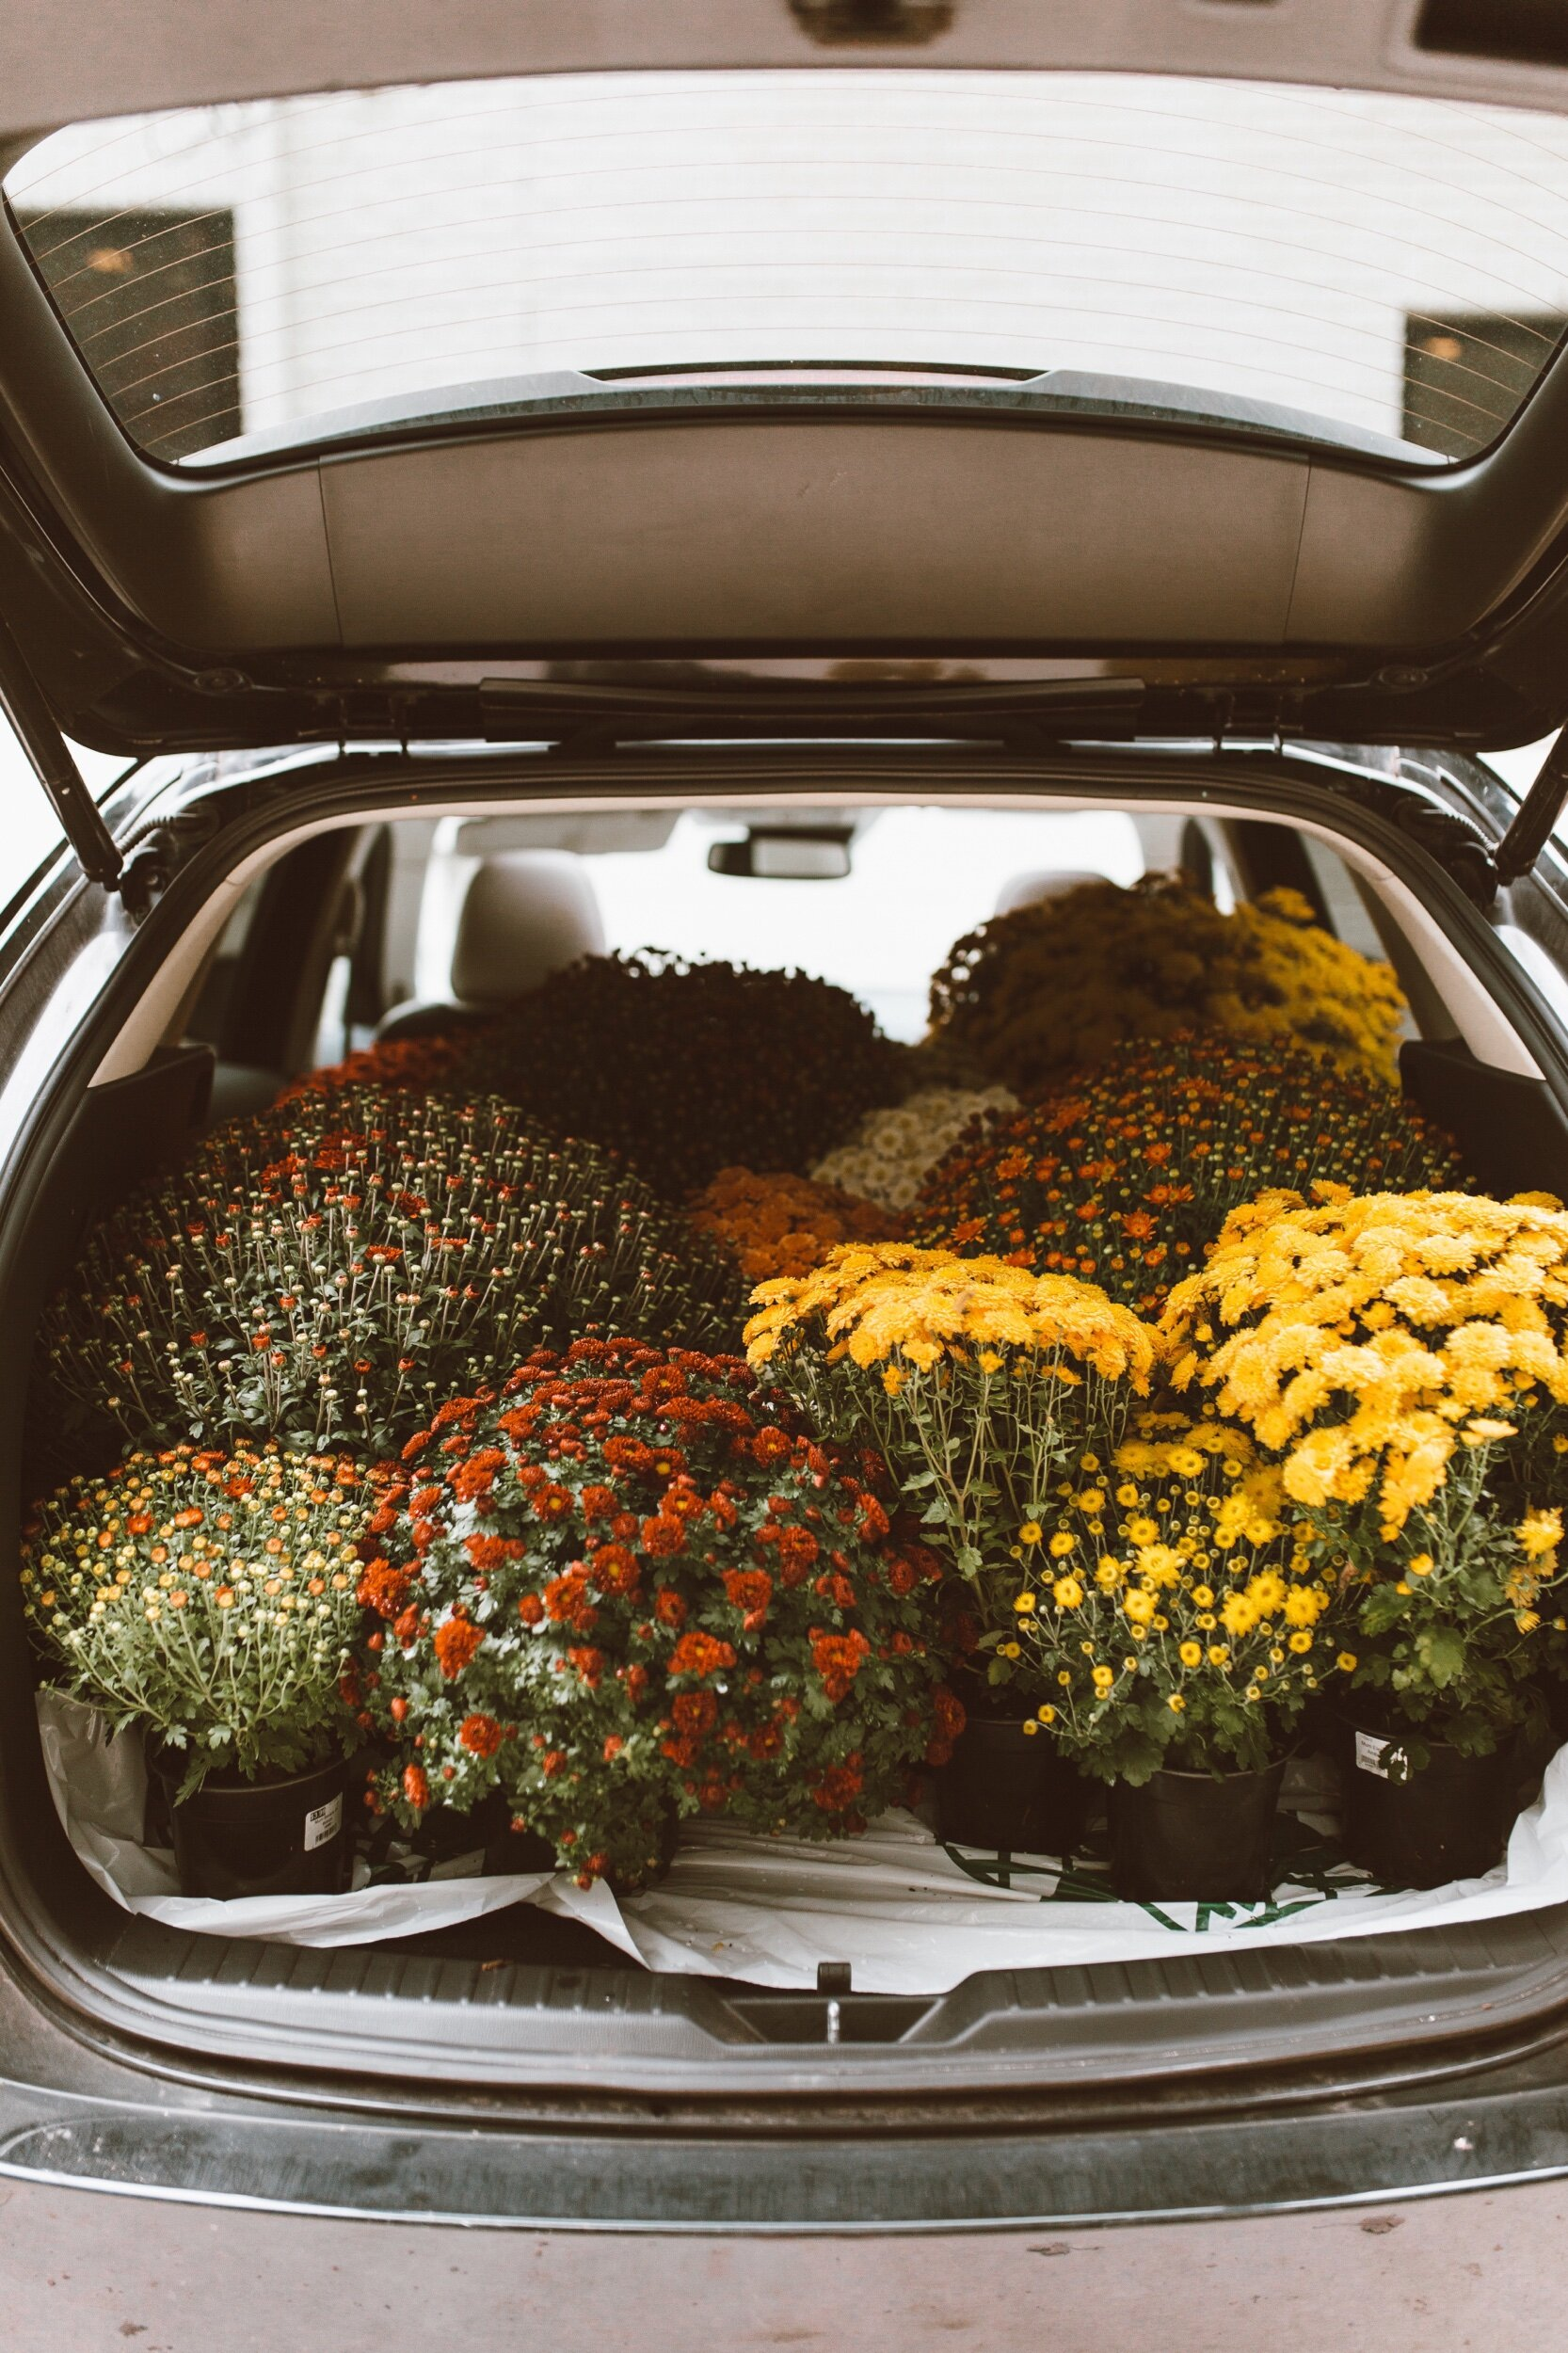 forthehome-how-to-care-for-fall-mums-01.jpeg